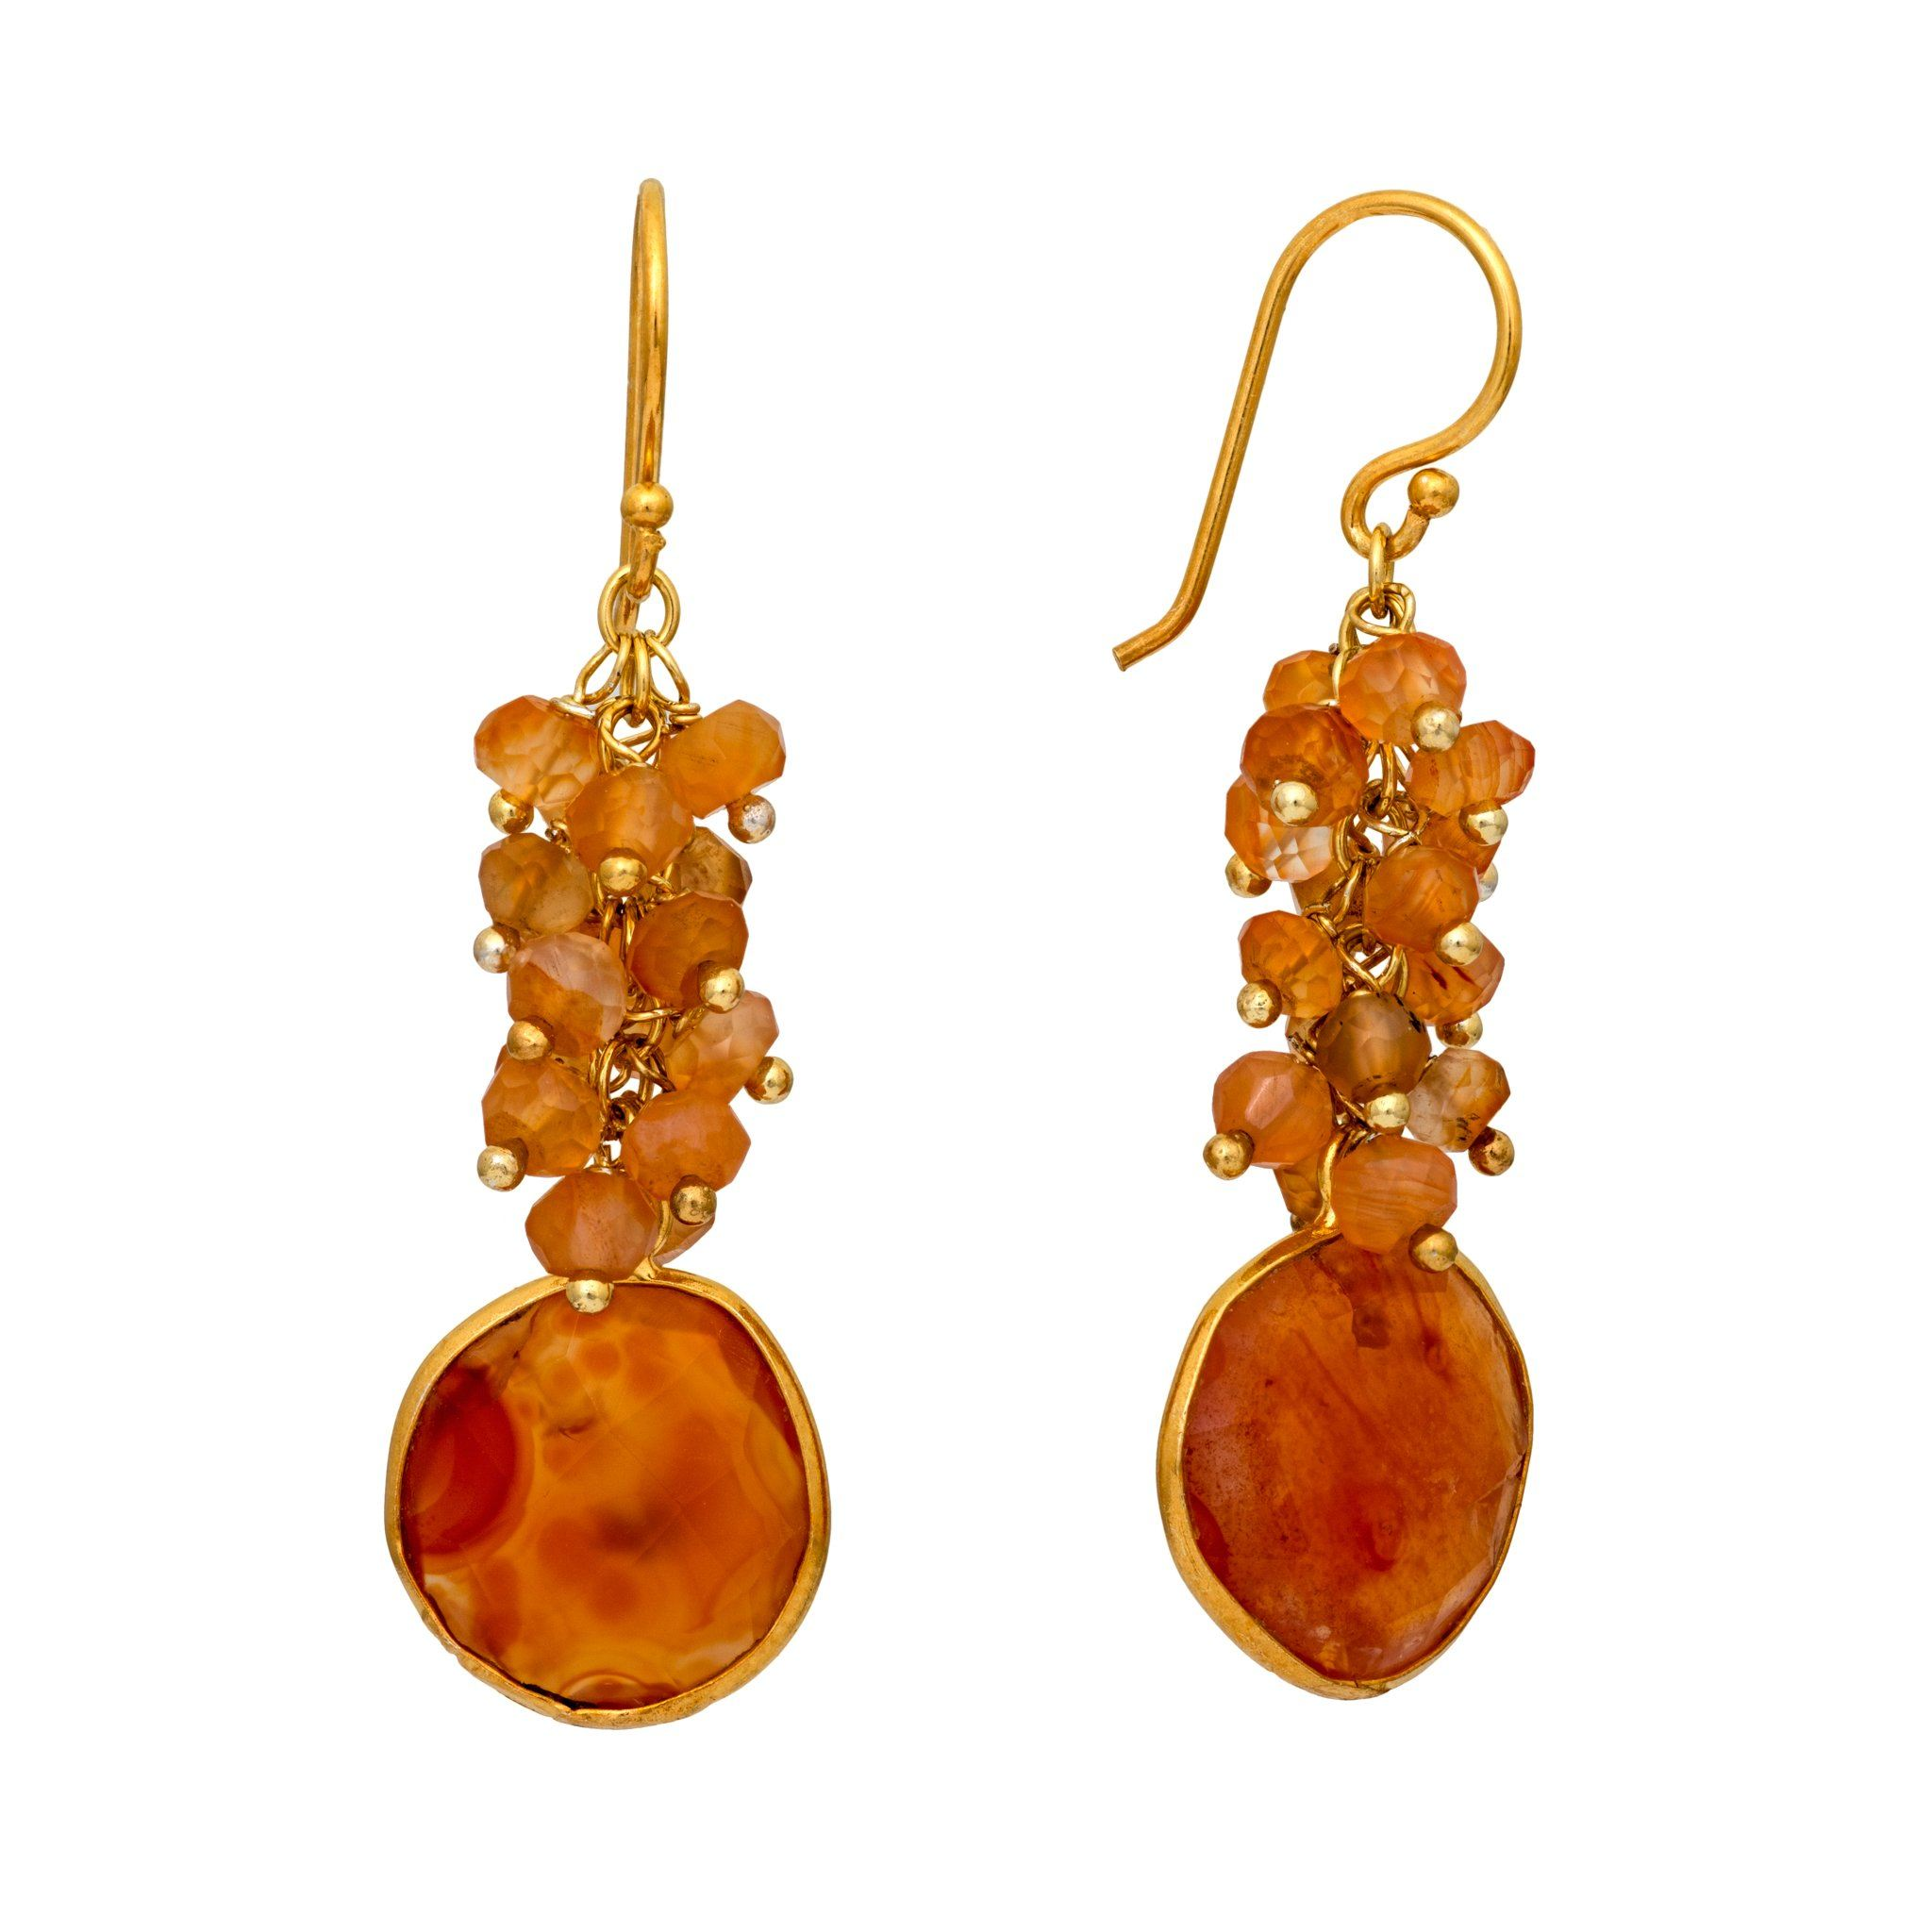 KAI carnelian cluster earrings - MadamSiam